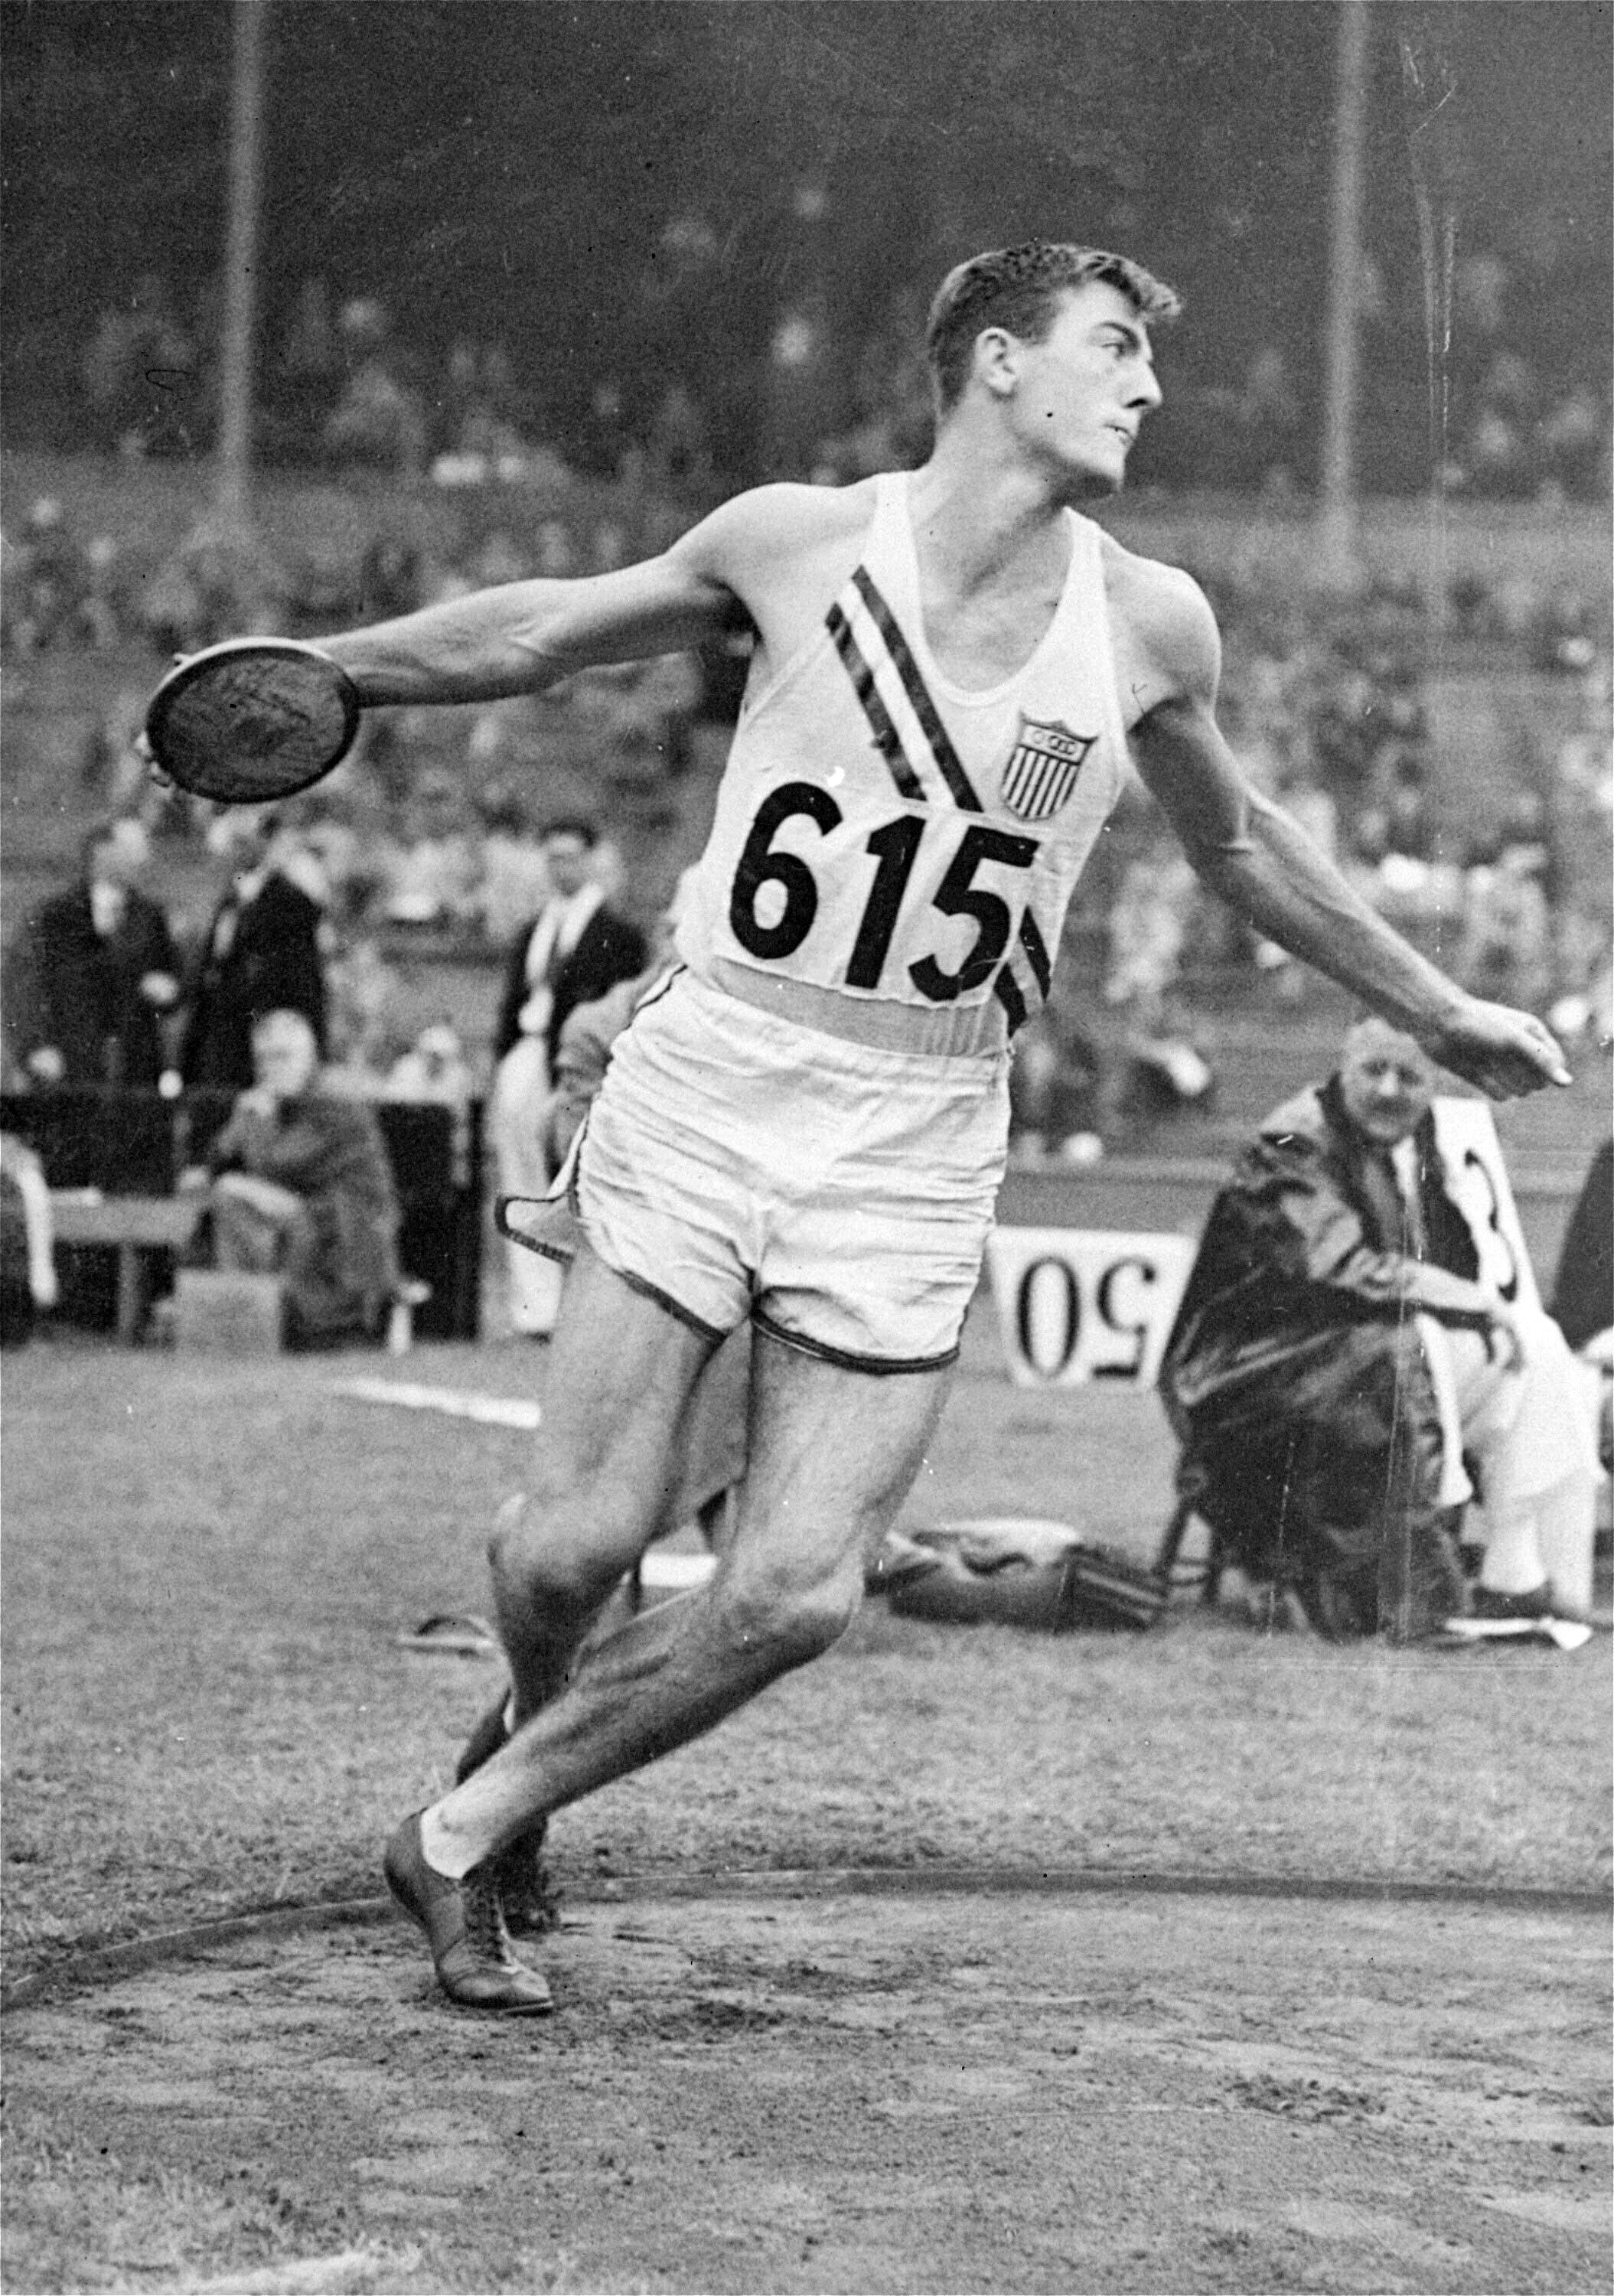 FILE - In this Aug. 6, 1948, file photo, Bob Mathias, of the United States, throws the discus during the decathlon competition at Wembley Stadium at the London Summer Olympics. The Associated Press was in London when it staged the first Olympics after World War II. Bob Mathias took up decathlon at the suggestion of his high school coach in Tulare, California. Less than three months later he qualified for the 1948 Games and soon found himself standing in Wembley Stadium. Mathias won the decathlon and, at 17, became the youngest male winner of a track and field event in Olympic history. (AP Photo, File)